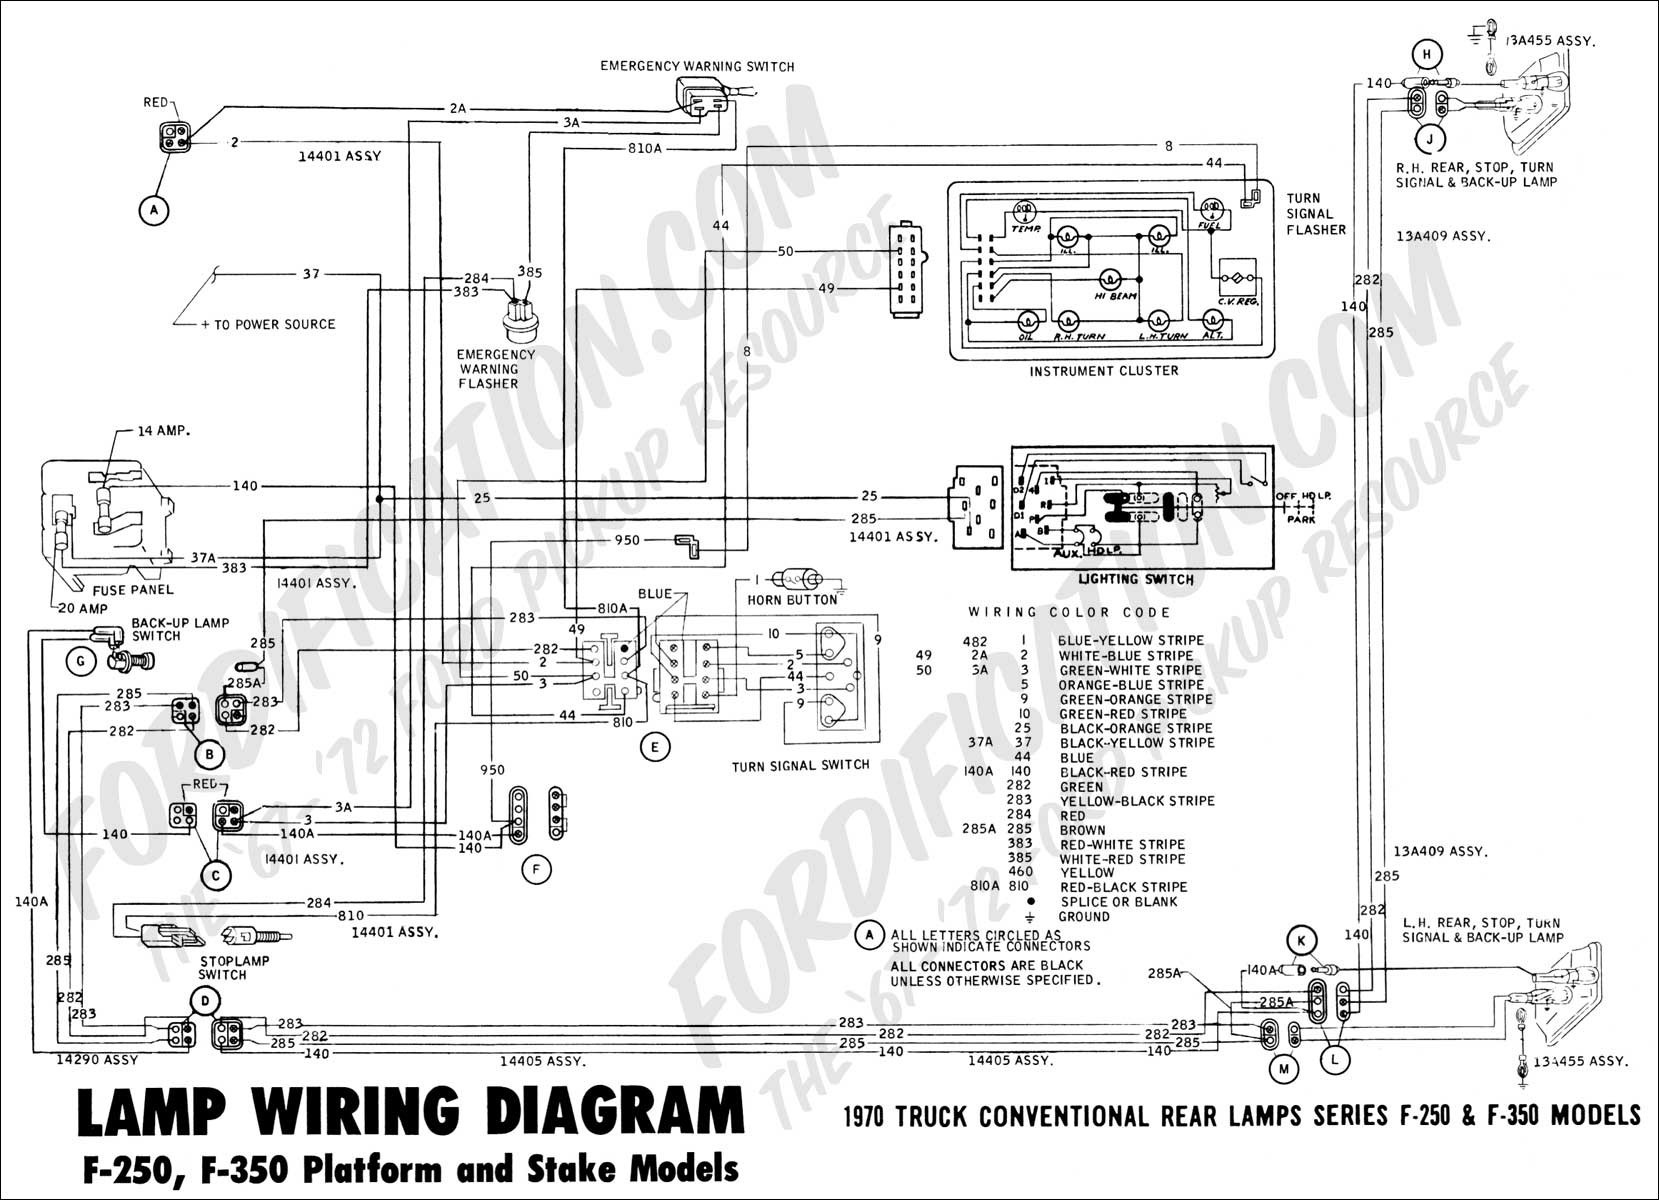 2004 Ford F 350 Tail Light Wiring - Machine Repair Manual F Cab Light Wiring Diagram on